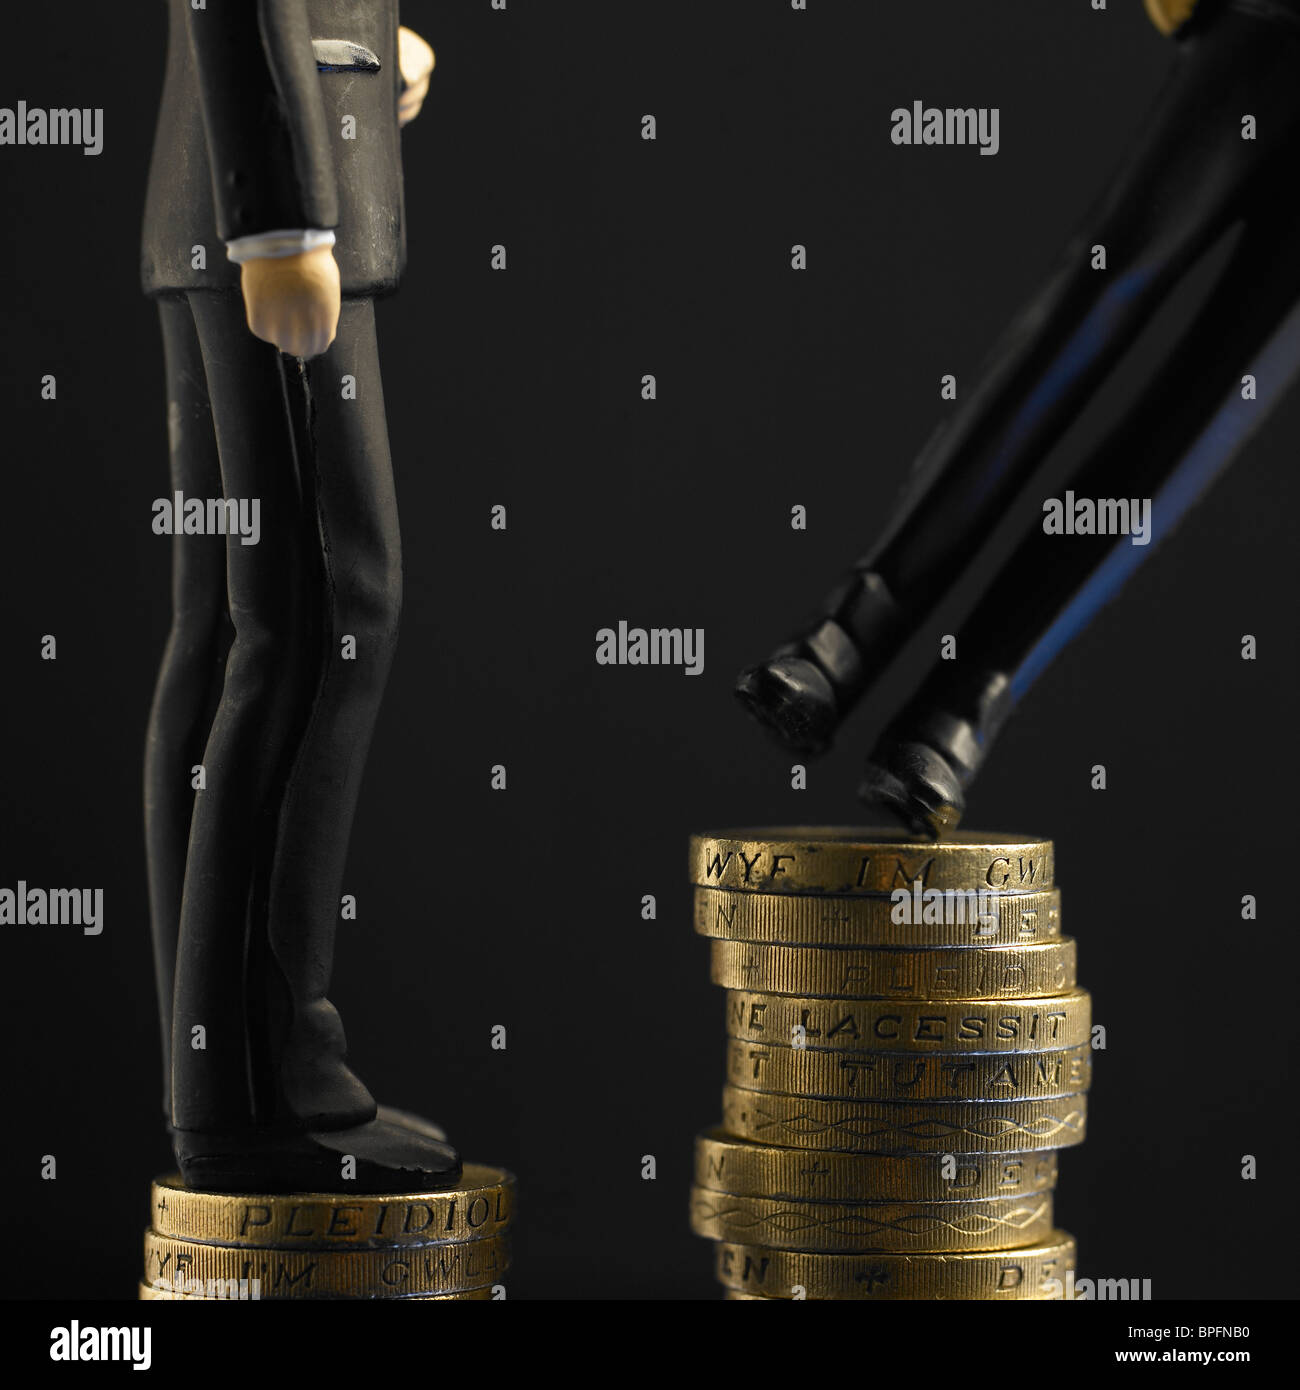 Two Figures In Black Suits Standing On Top Of Unequal Piles Of Pound Sterling Coins, One Toppling Stock Photo